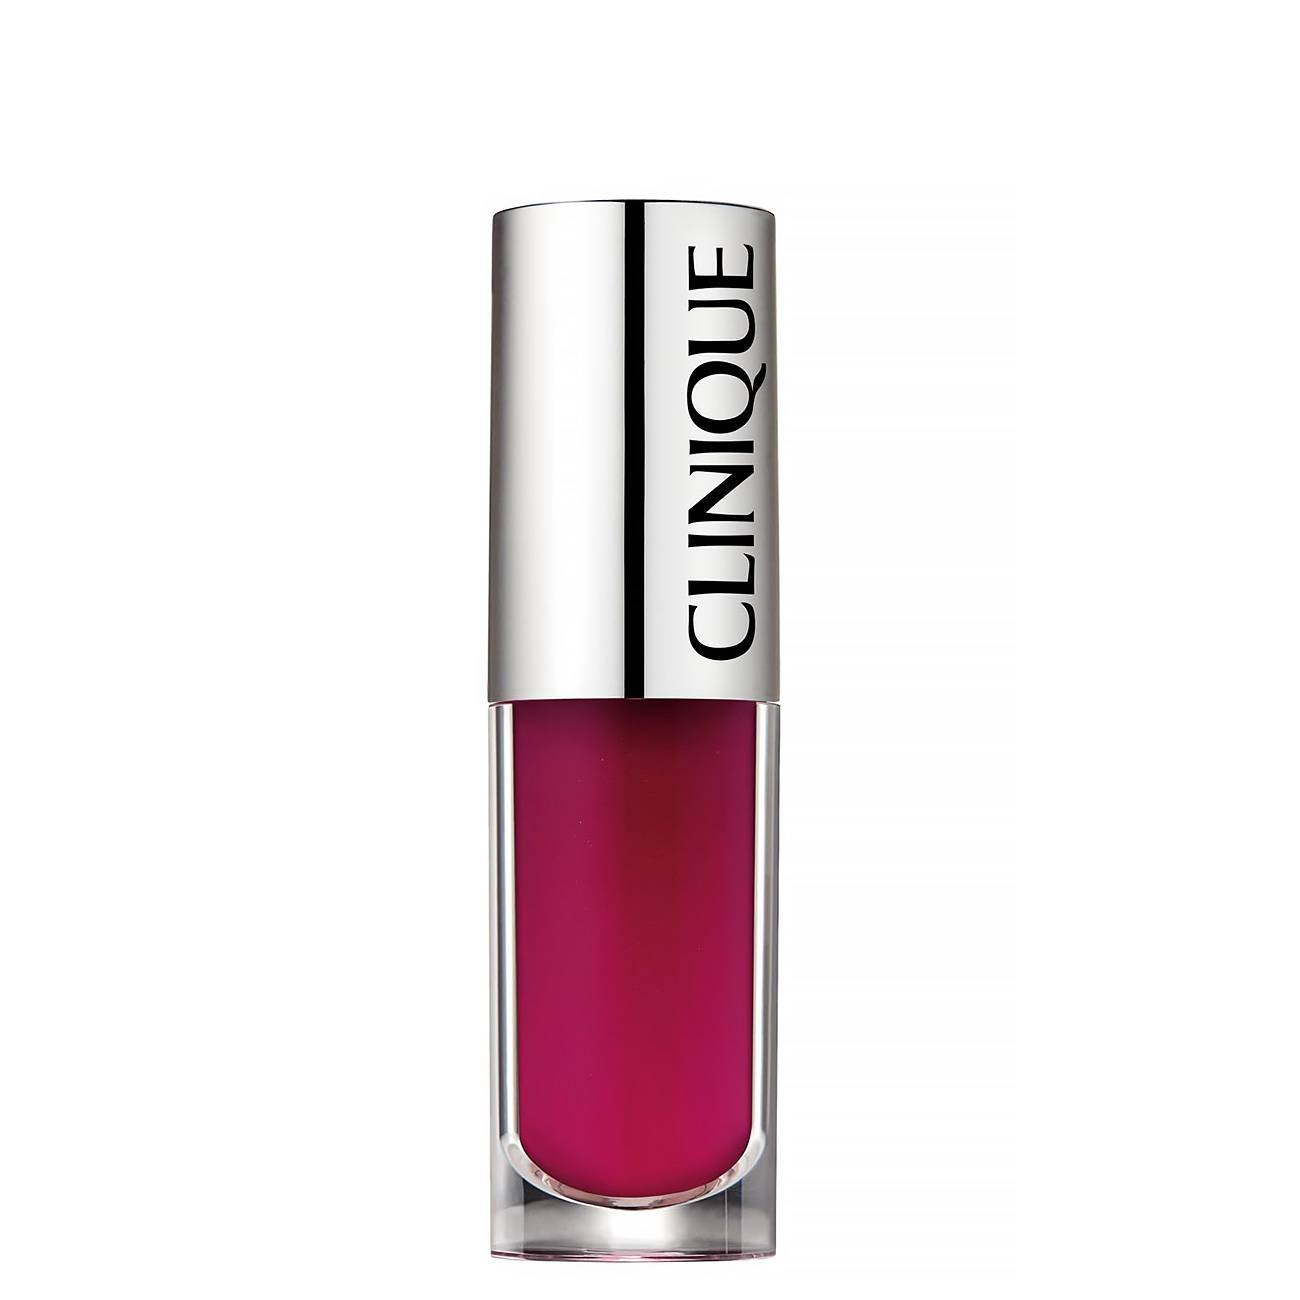 Pop Splash Lip Gloss 016 4.3ml Clinique imagine 2021 bestvalue.eu